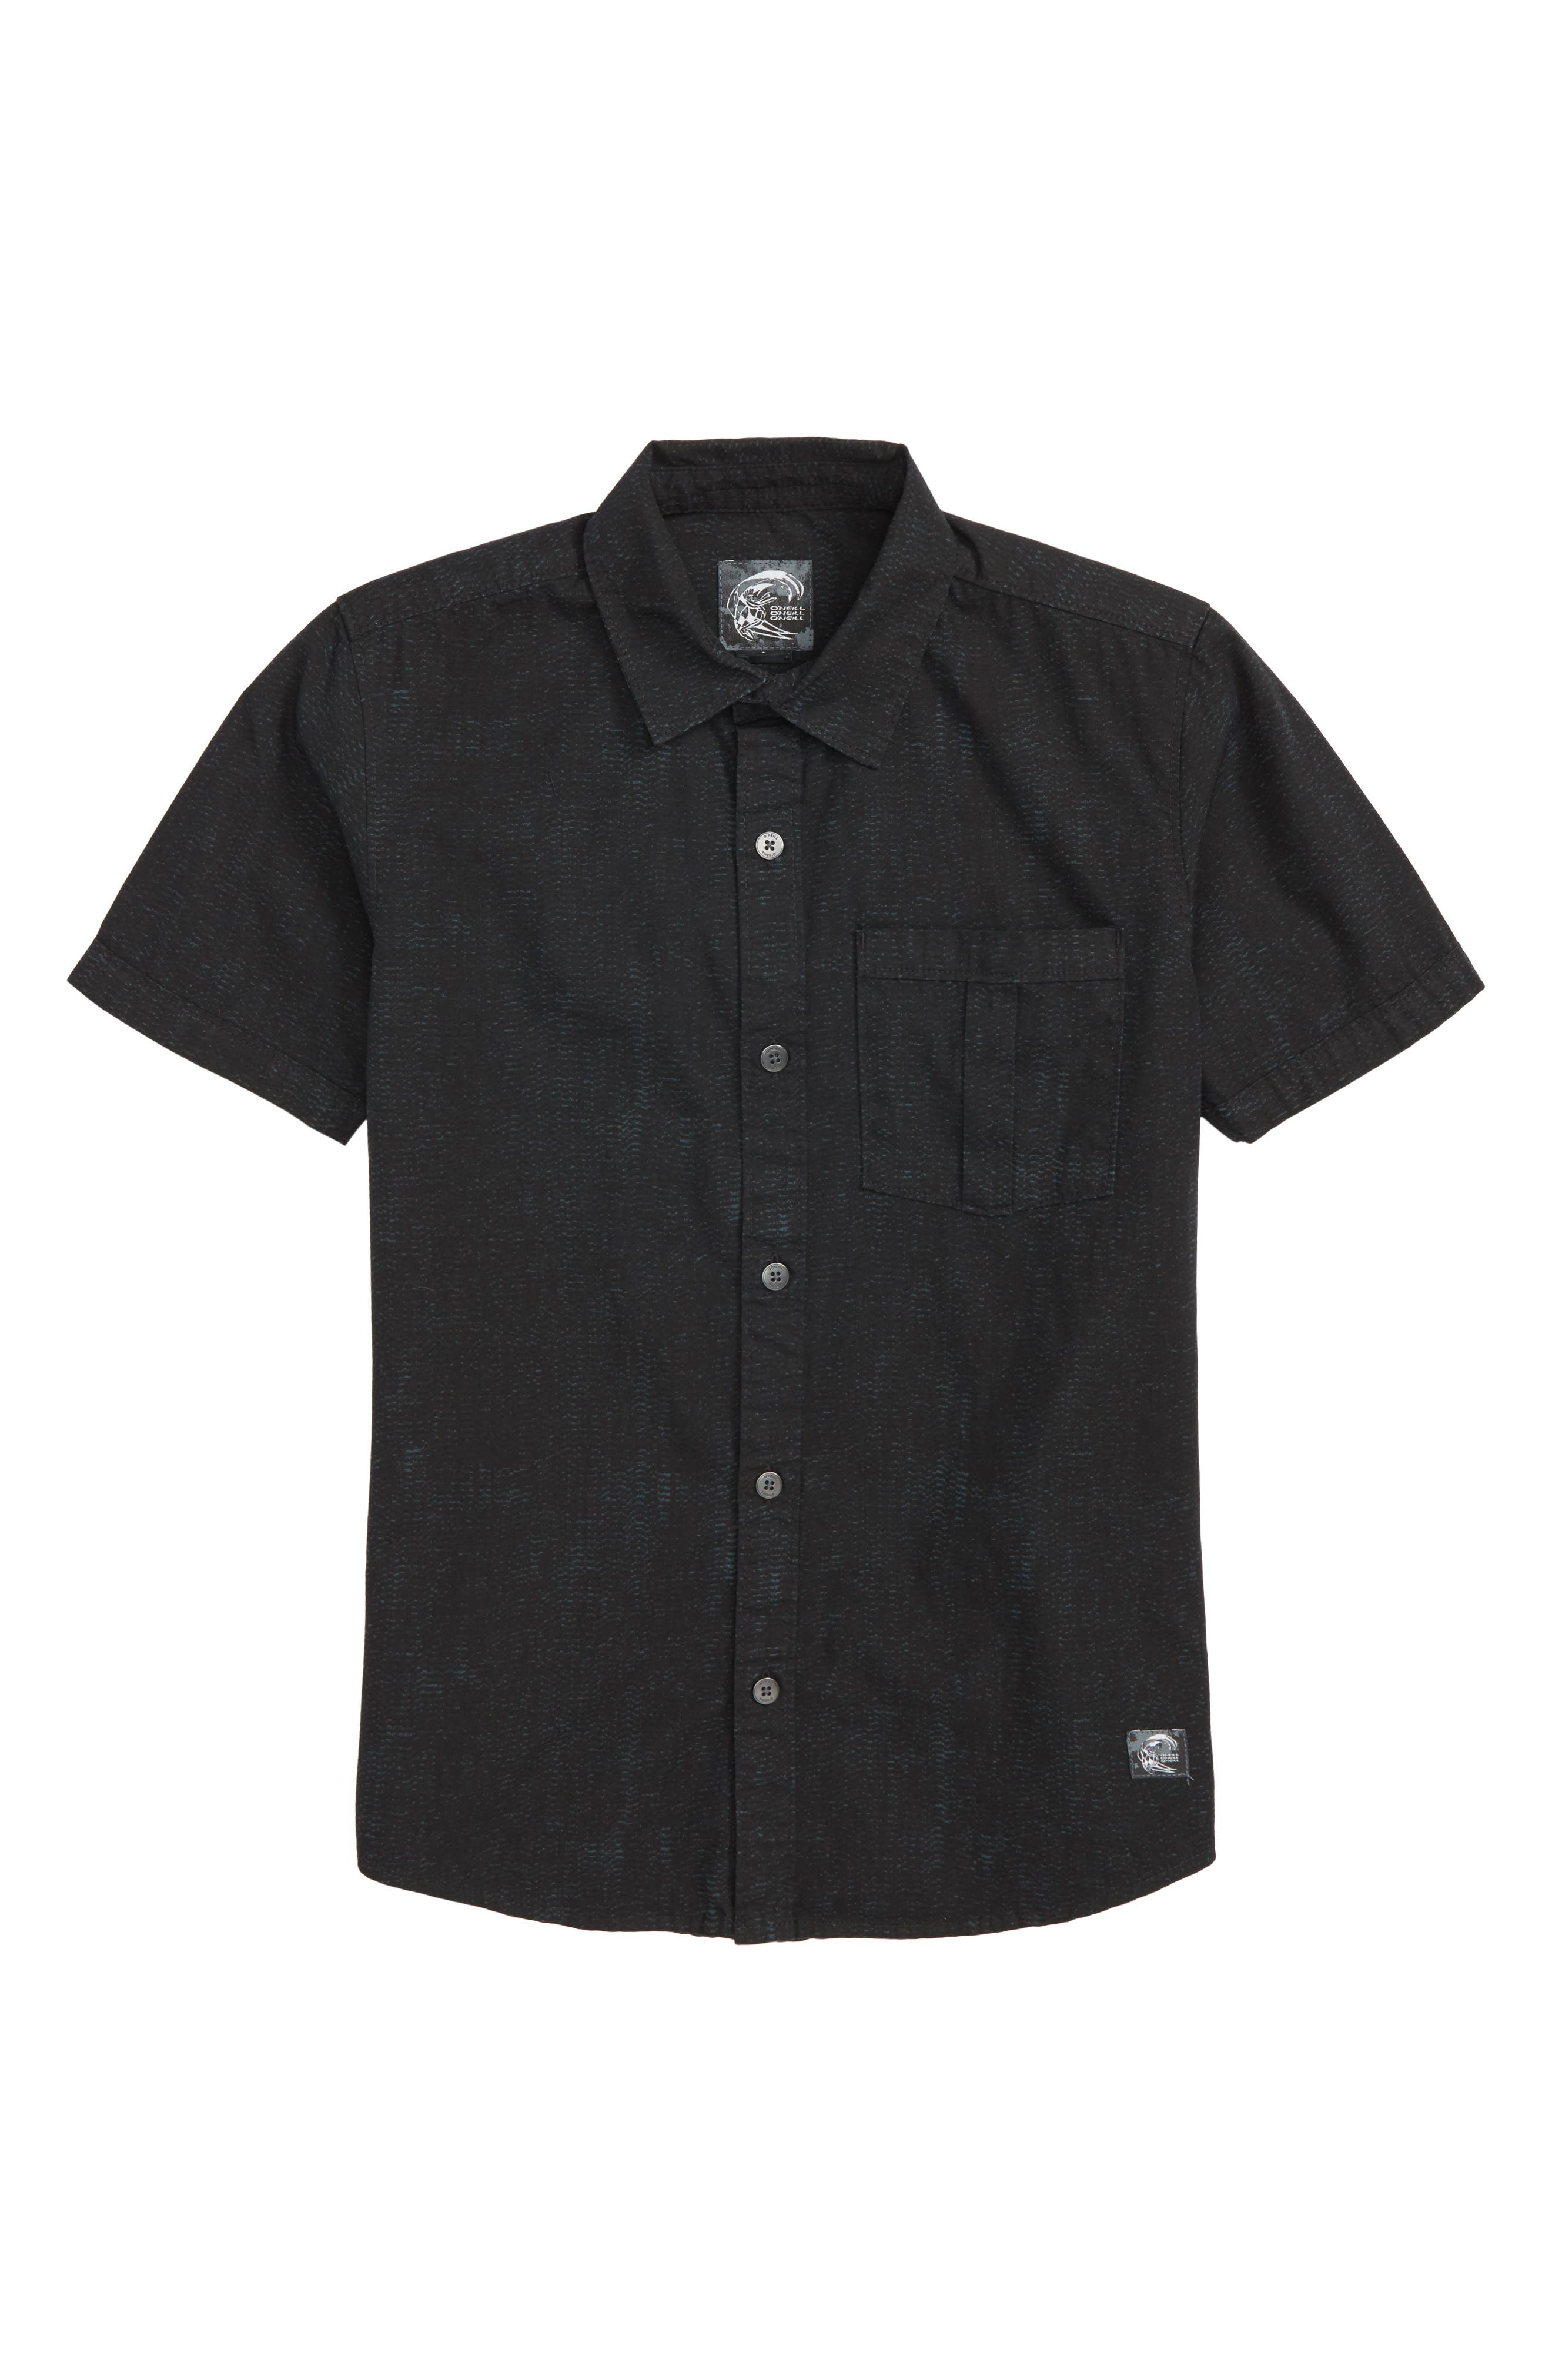 Untitled Woven Shirt,                         Main,                         color, Black